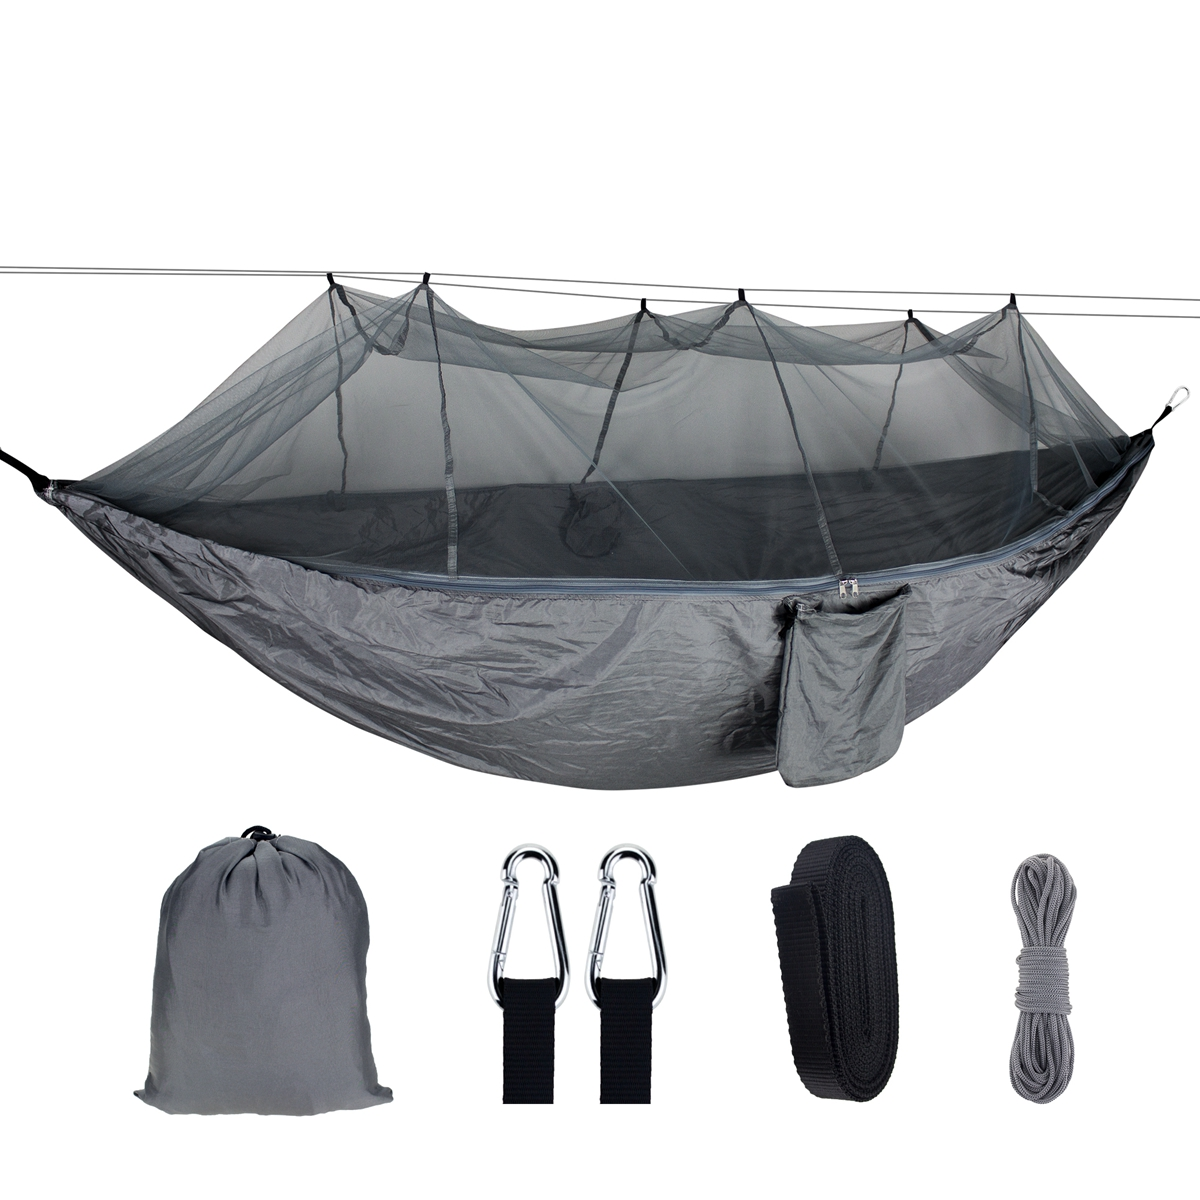 1-2 Person Portable Outdoor Camping Hammock with Mosquito Net Hi